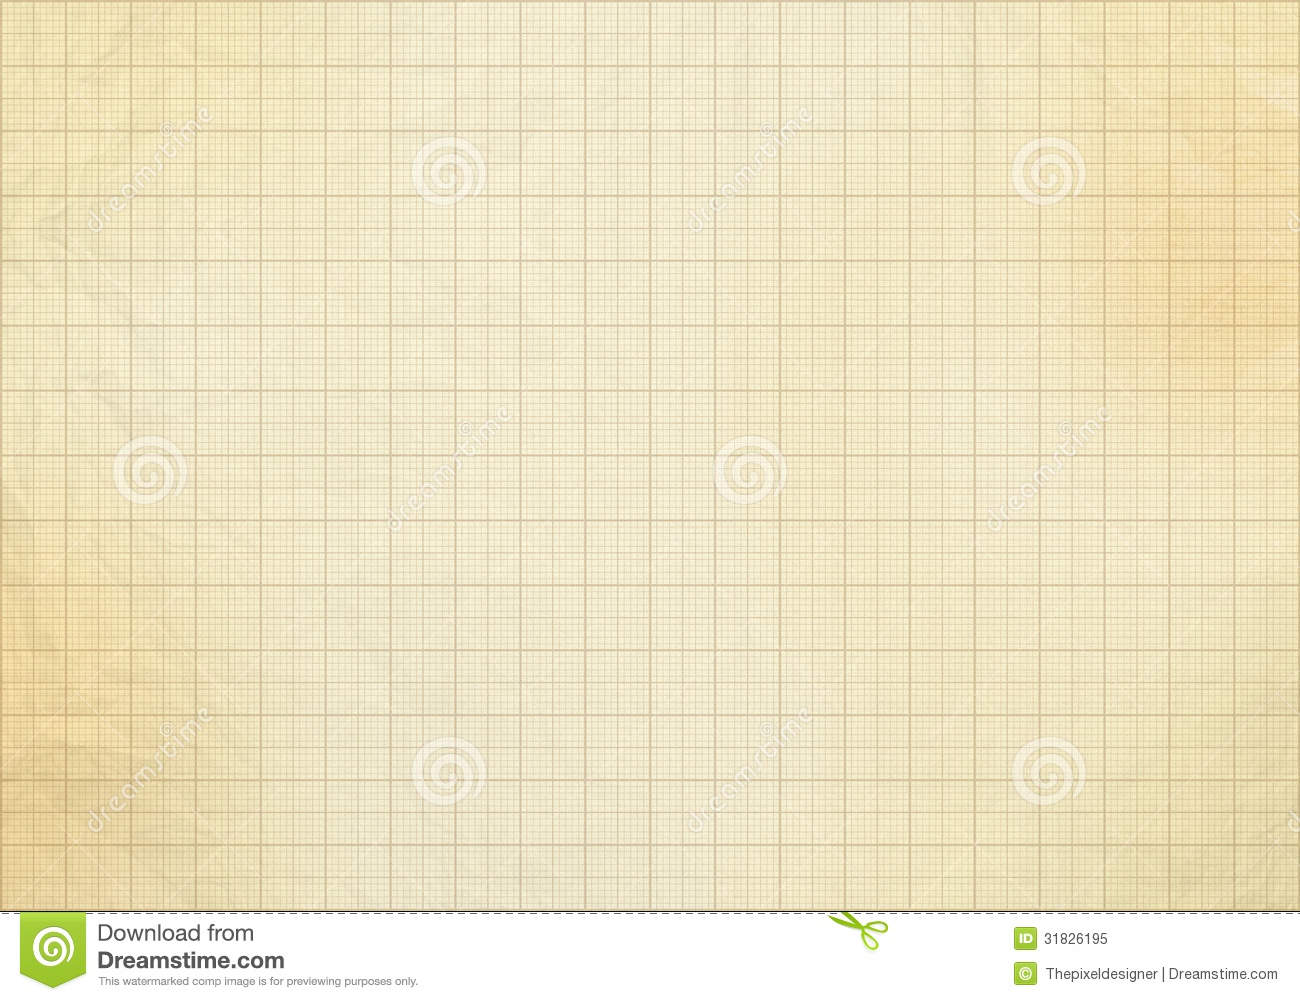 Blank Graph Paper Grid